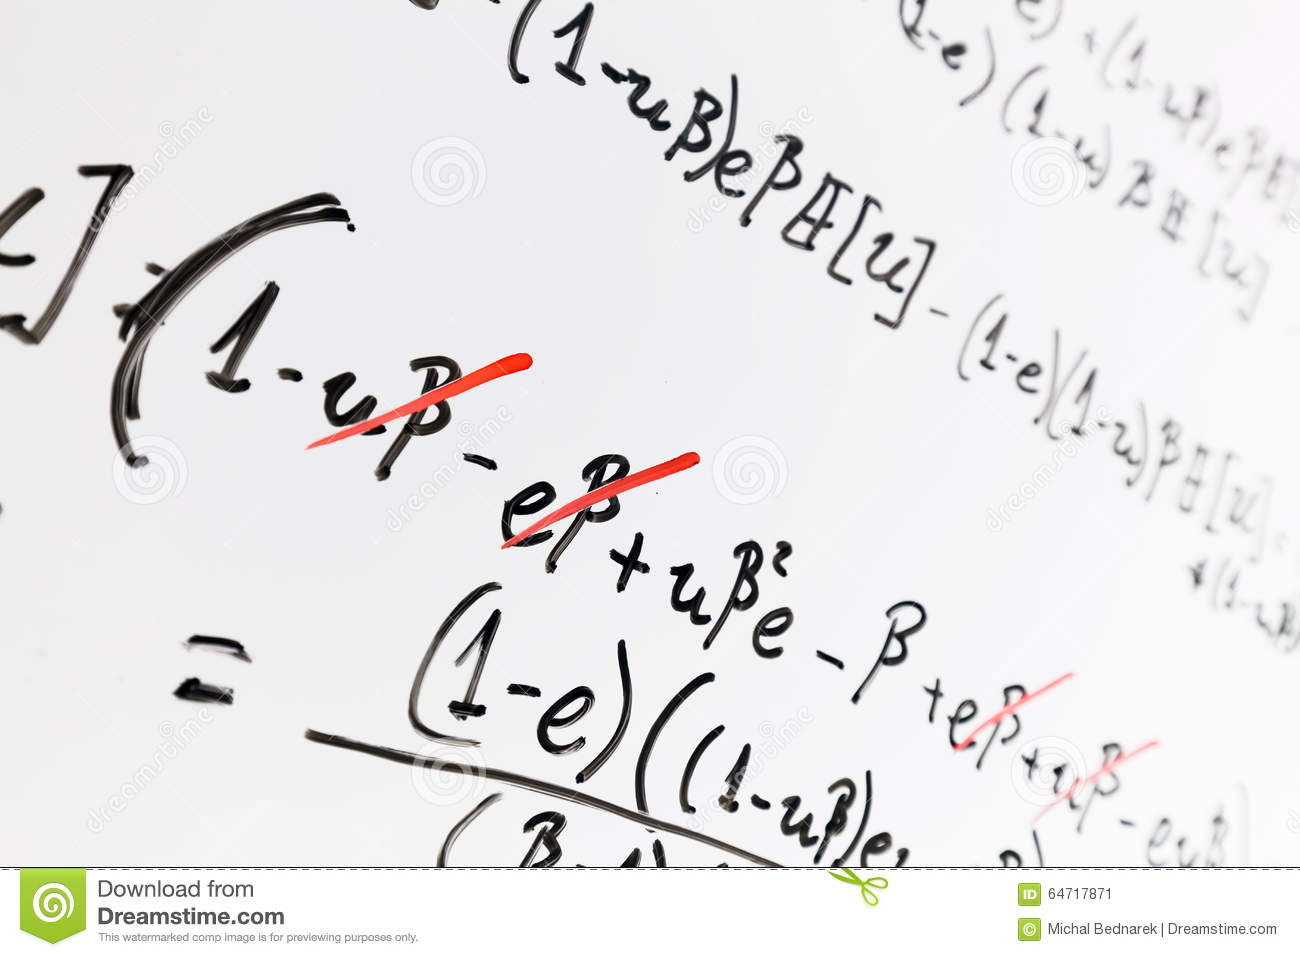 mathematics mathematics and real economics Mathematical economics is not an individual branch of economics in the sense that international trade, public finance, or urban economics, but it is an approach to economic theory.